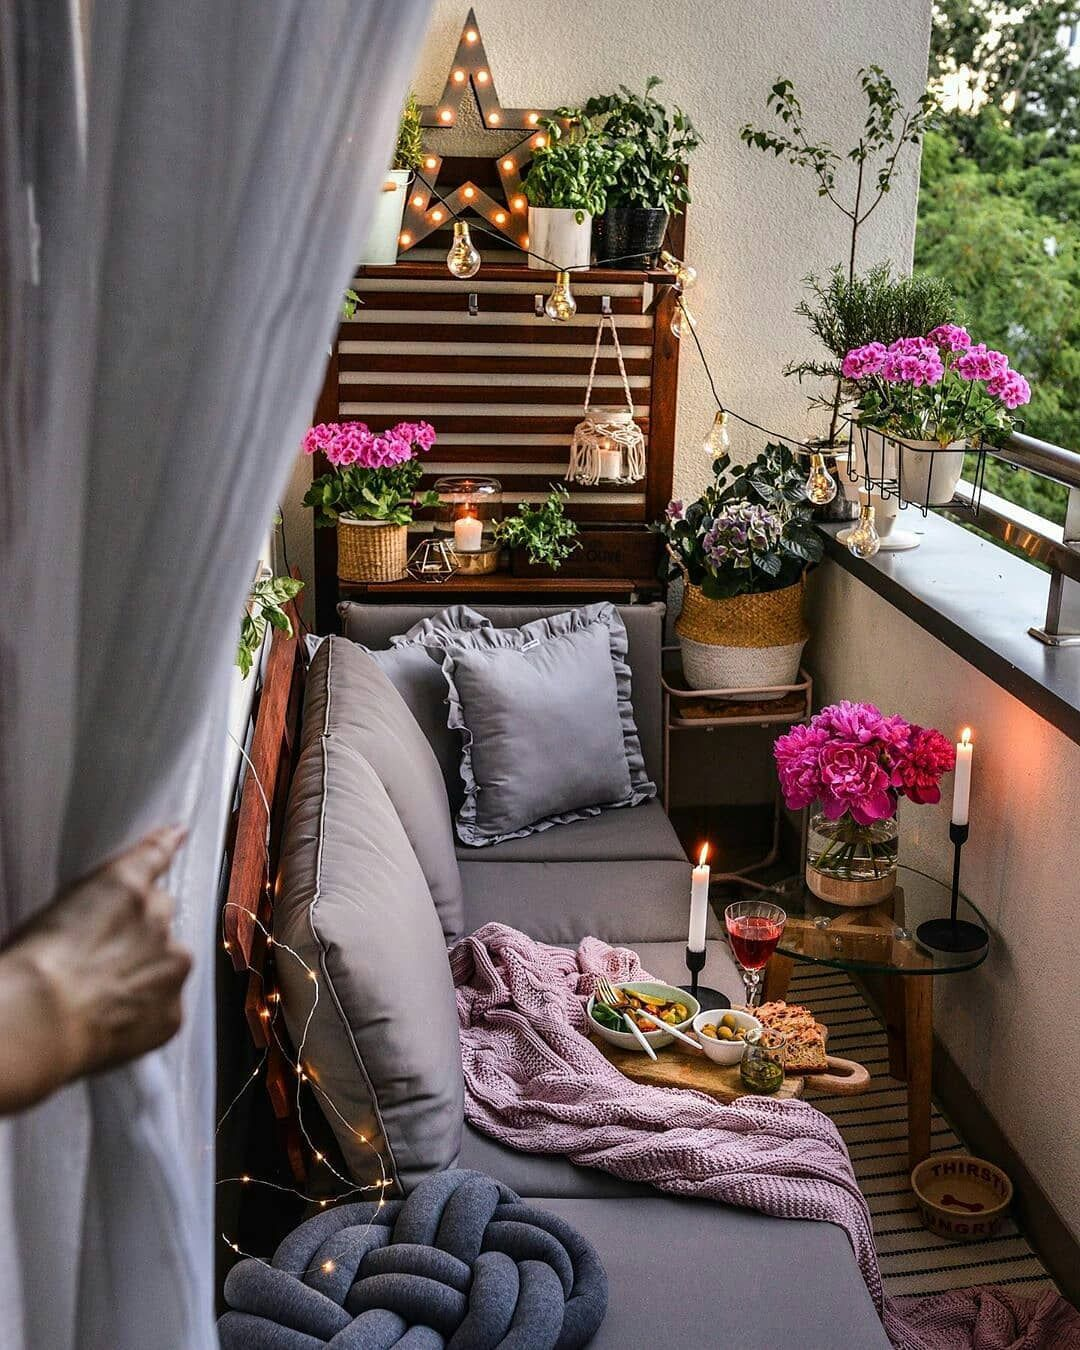 40 Cozy Balcony Ideas and Decor Inspiration 2019 - Page 23 of 41 - My Blog